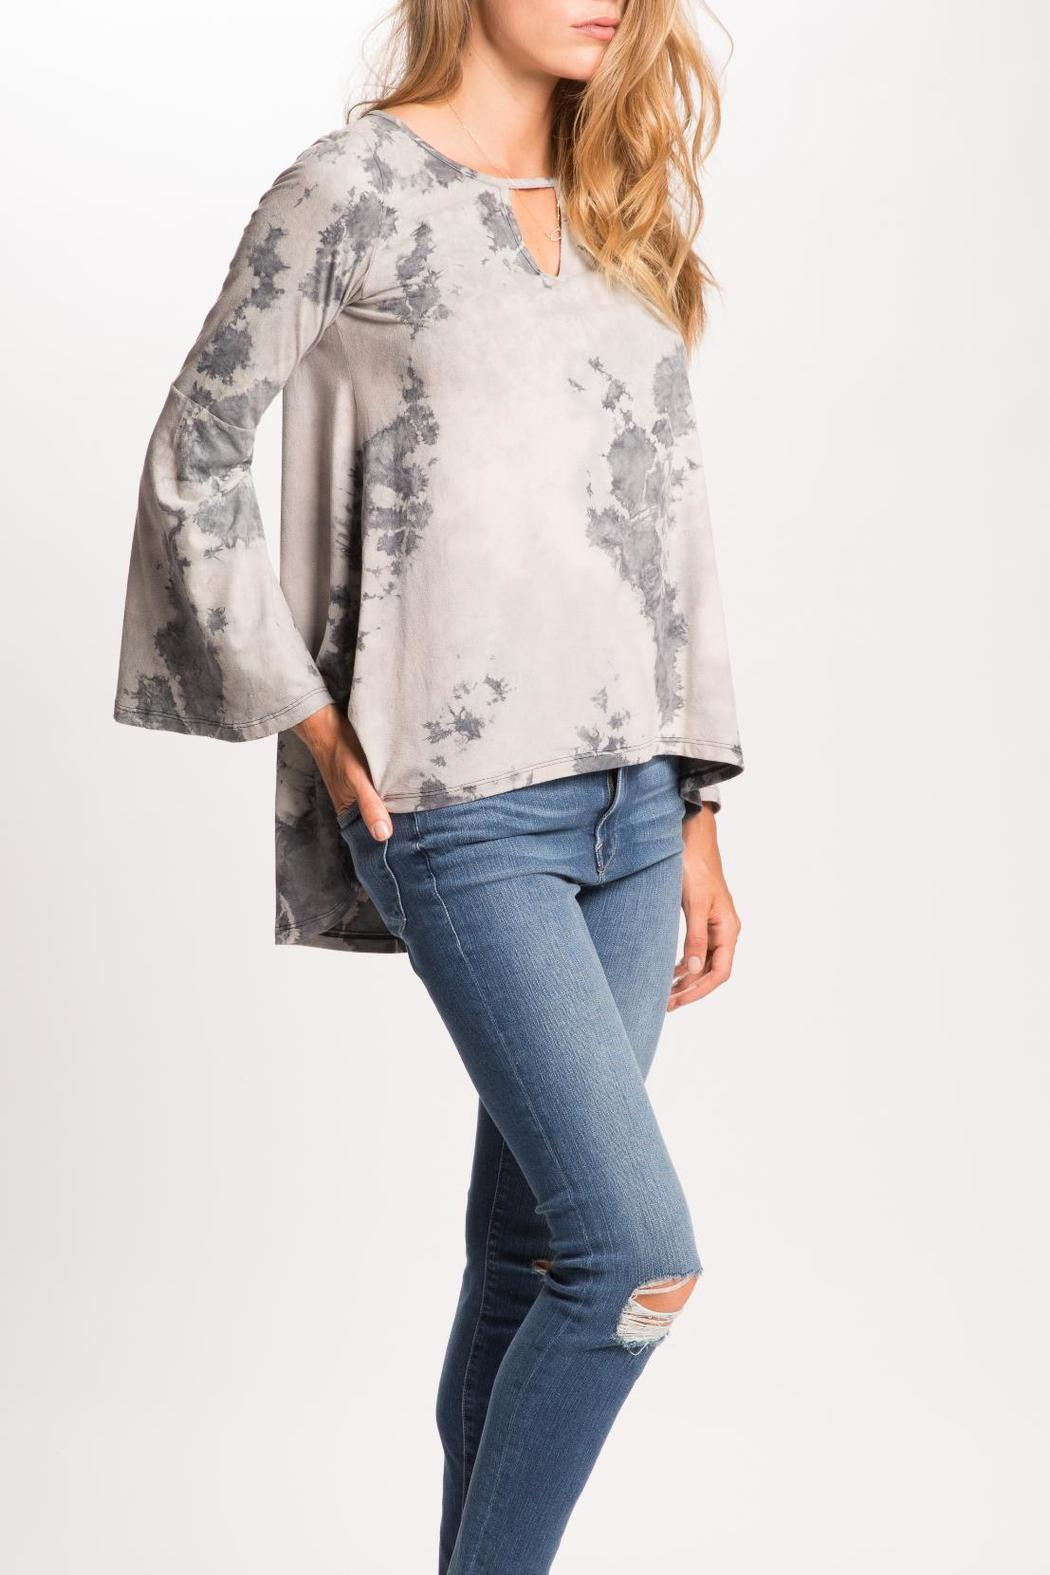 PPLA Clothing Storm Ls Top - Side Cropped Image